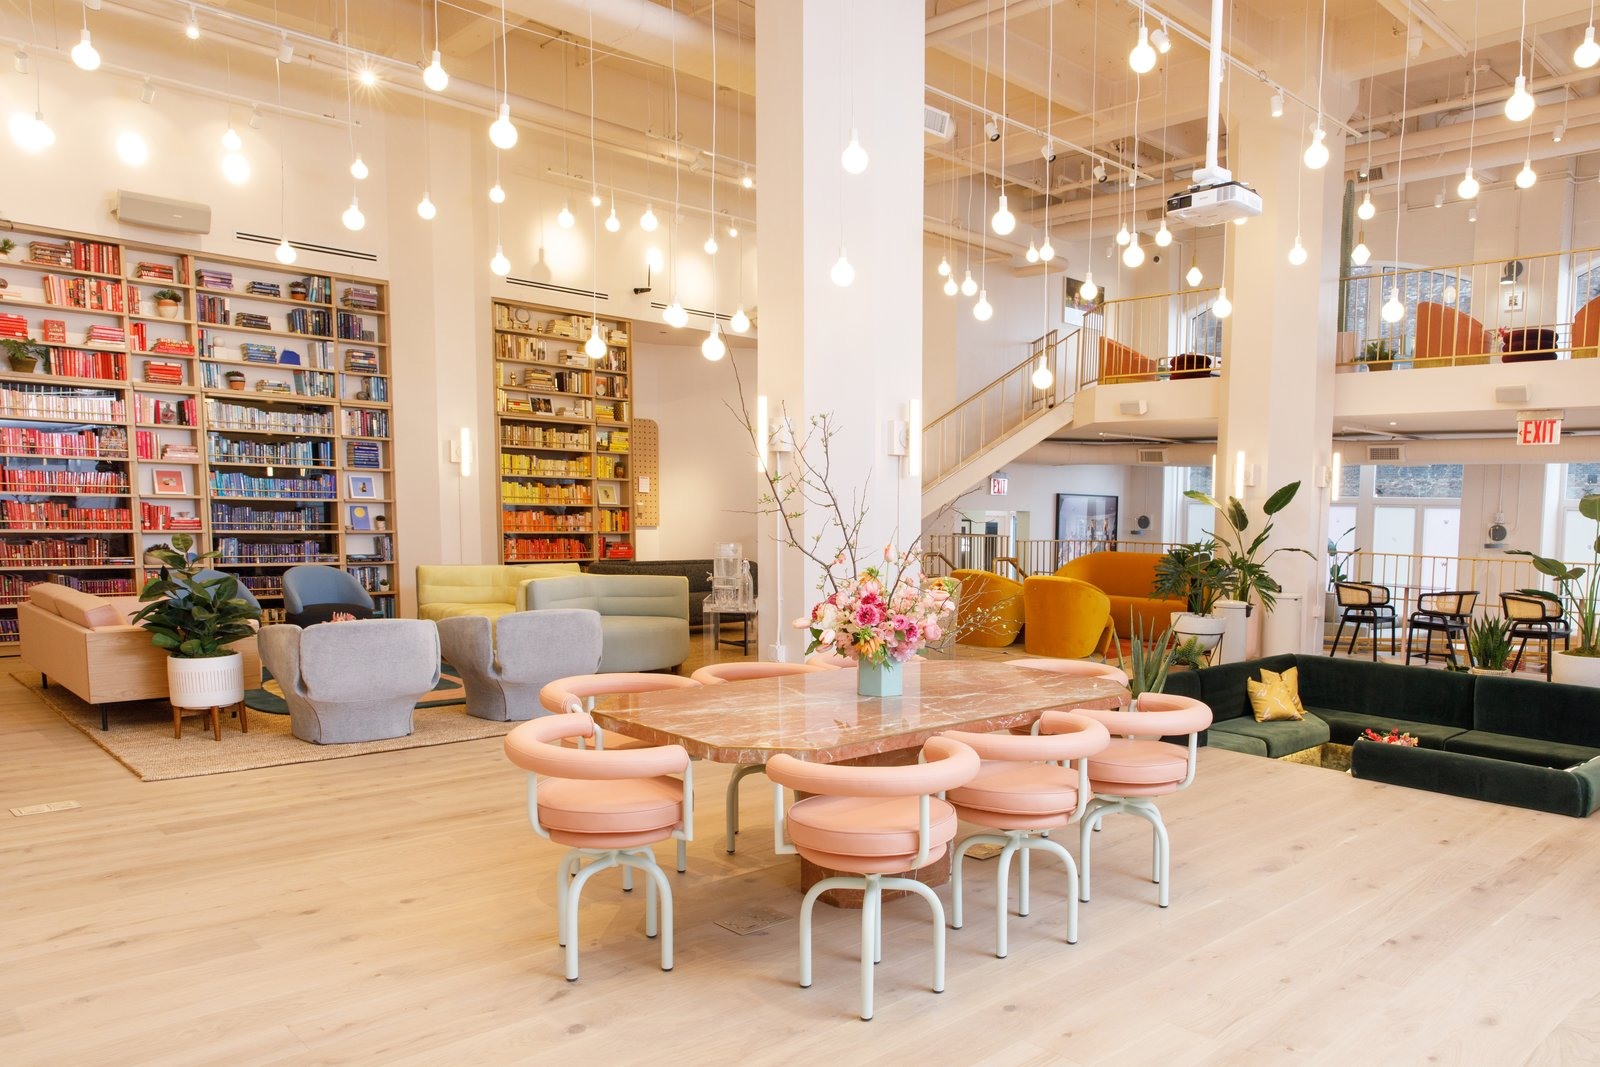 A dramatic pink granite table provides a central meeting spot. Tagged: Office, Chair, Bookcase, Library, Study, Light Hardwood, Shelves, and Rug.  Best Office Photos from 10 Dwell Projects That Were Proudly Designed by Women